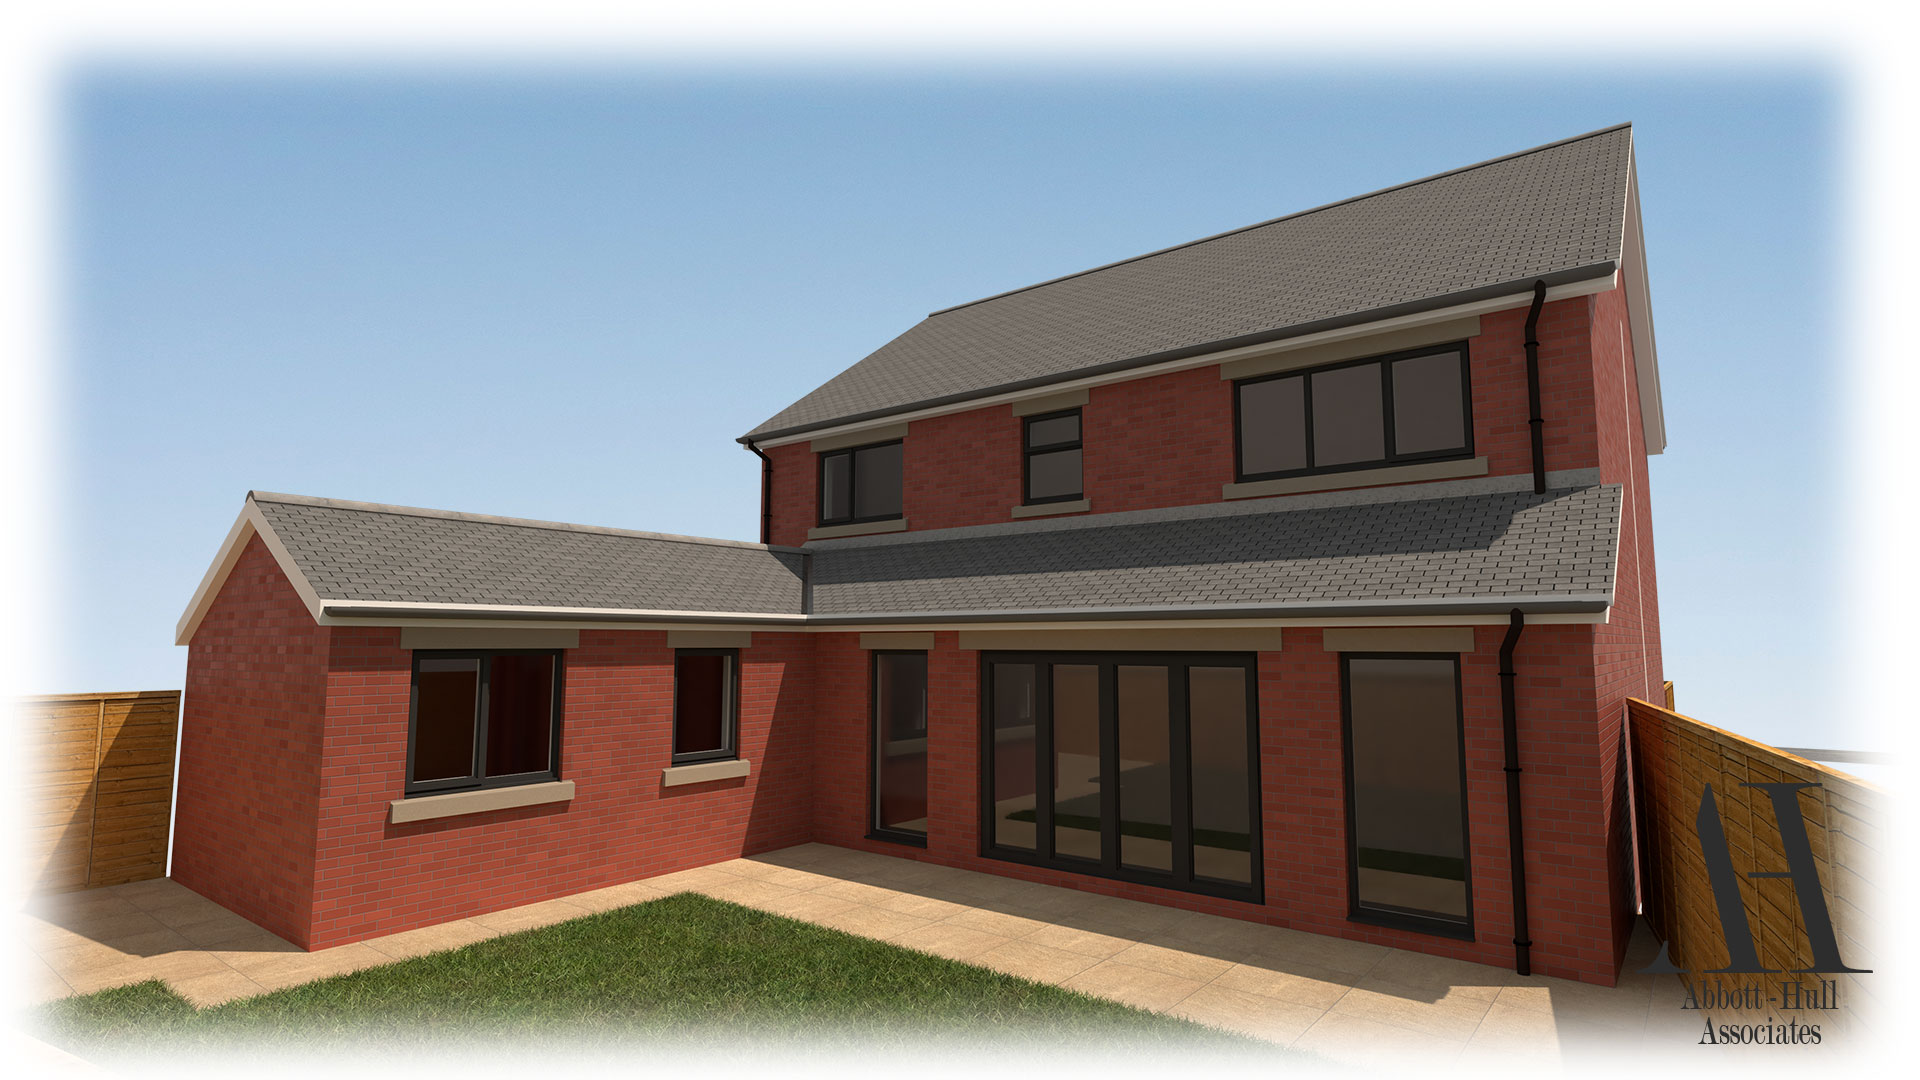 Marsh Road, Thornton-Cleveleys, House Extension - Visual C